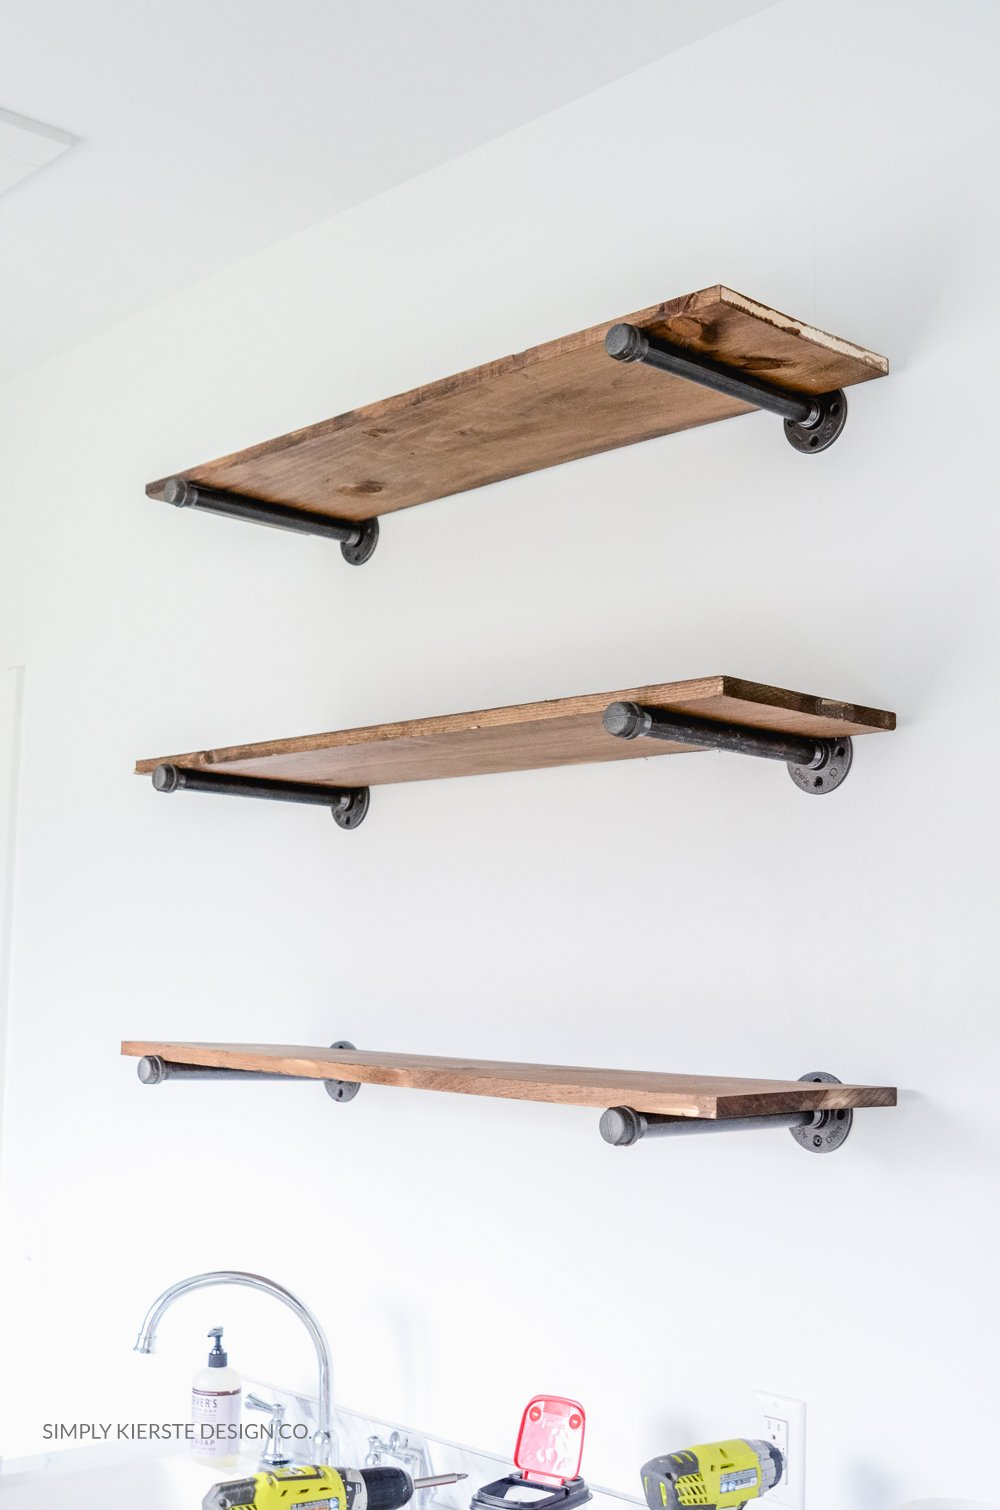 DIY Farmhouse Shelves | simplykierste.com